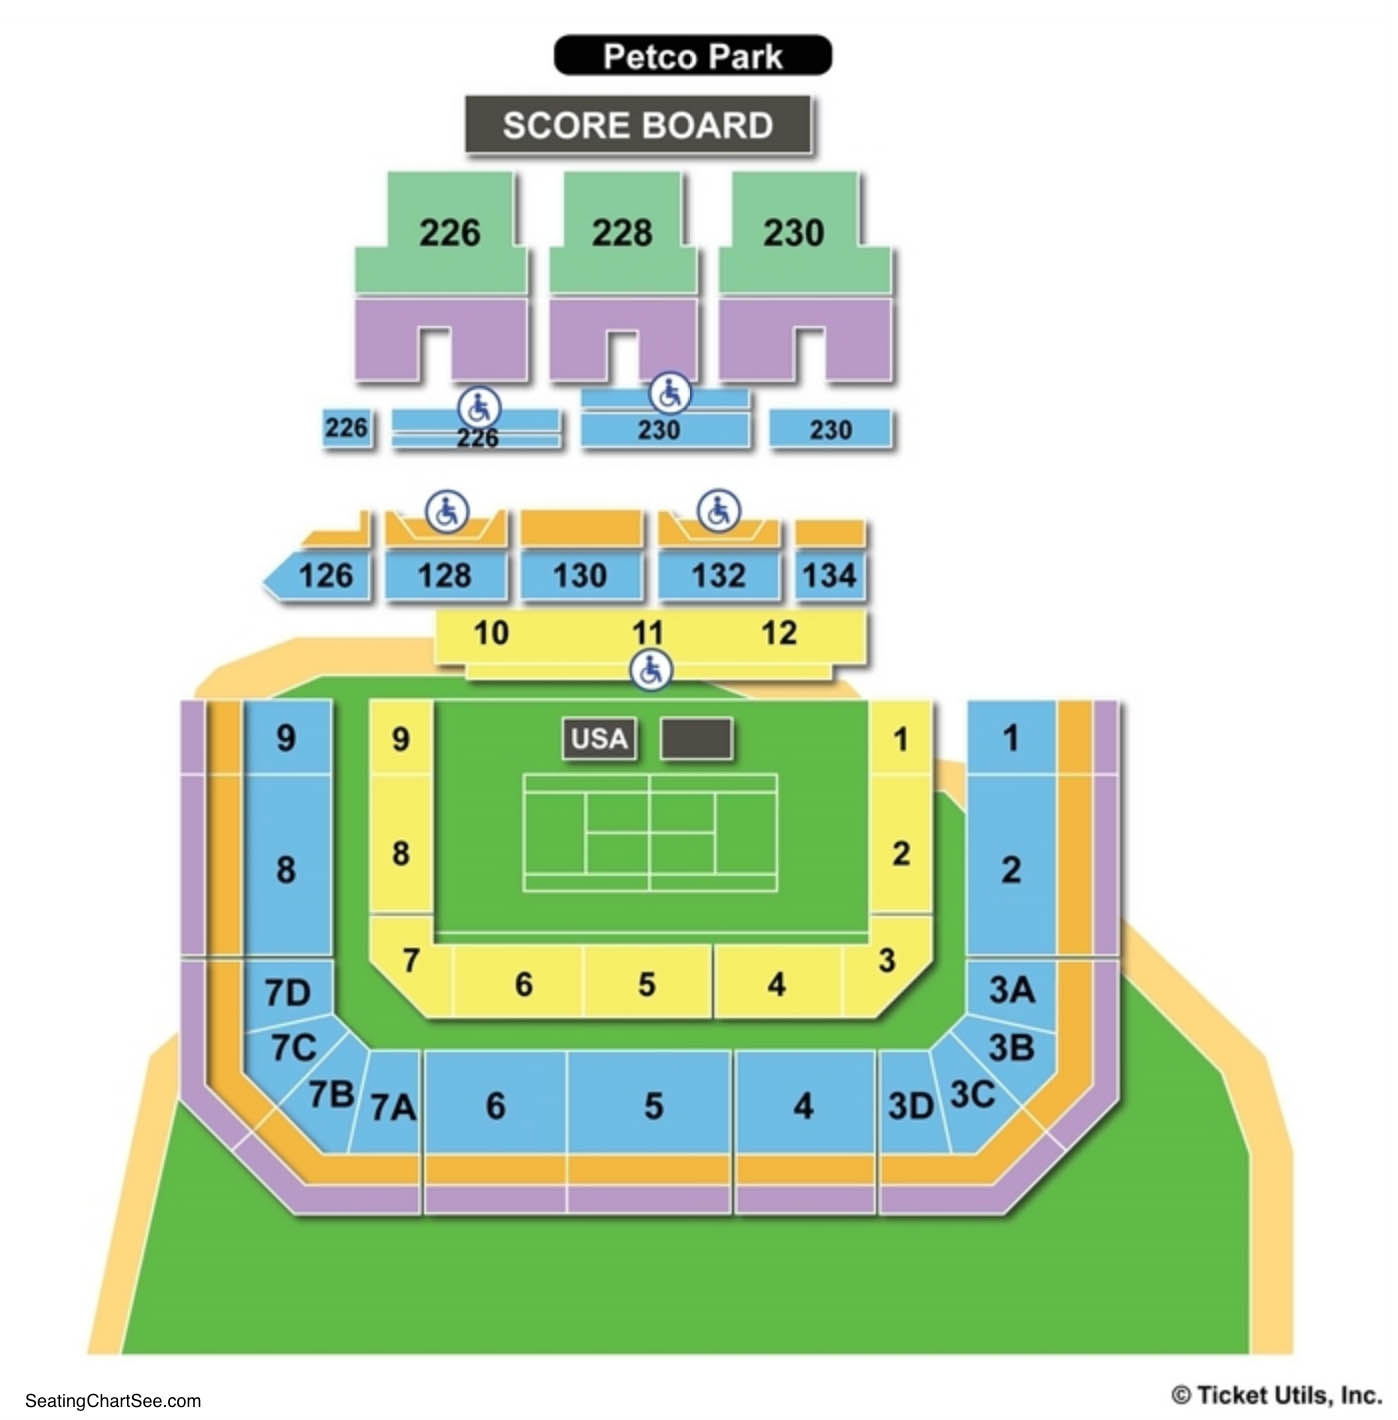 Petco Park Tennis Seating Chart